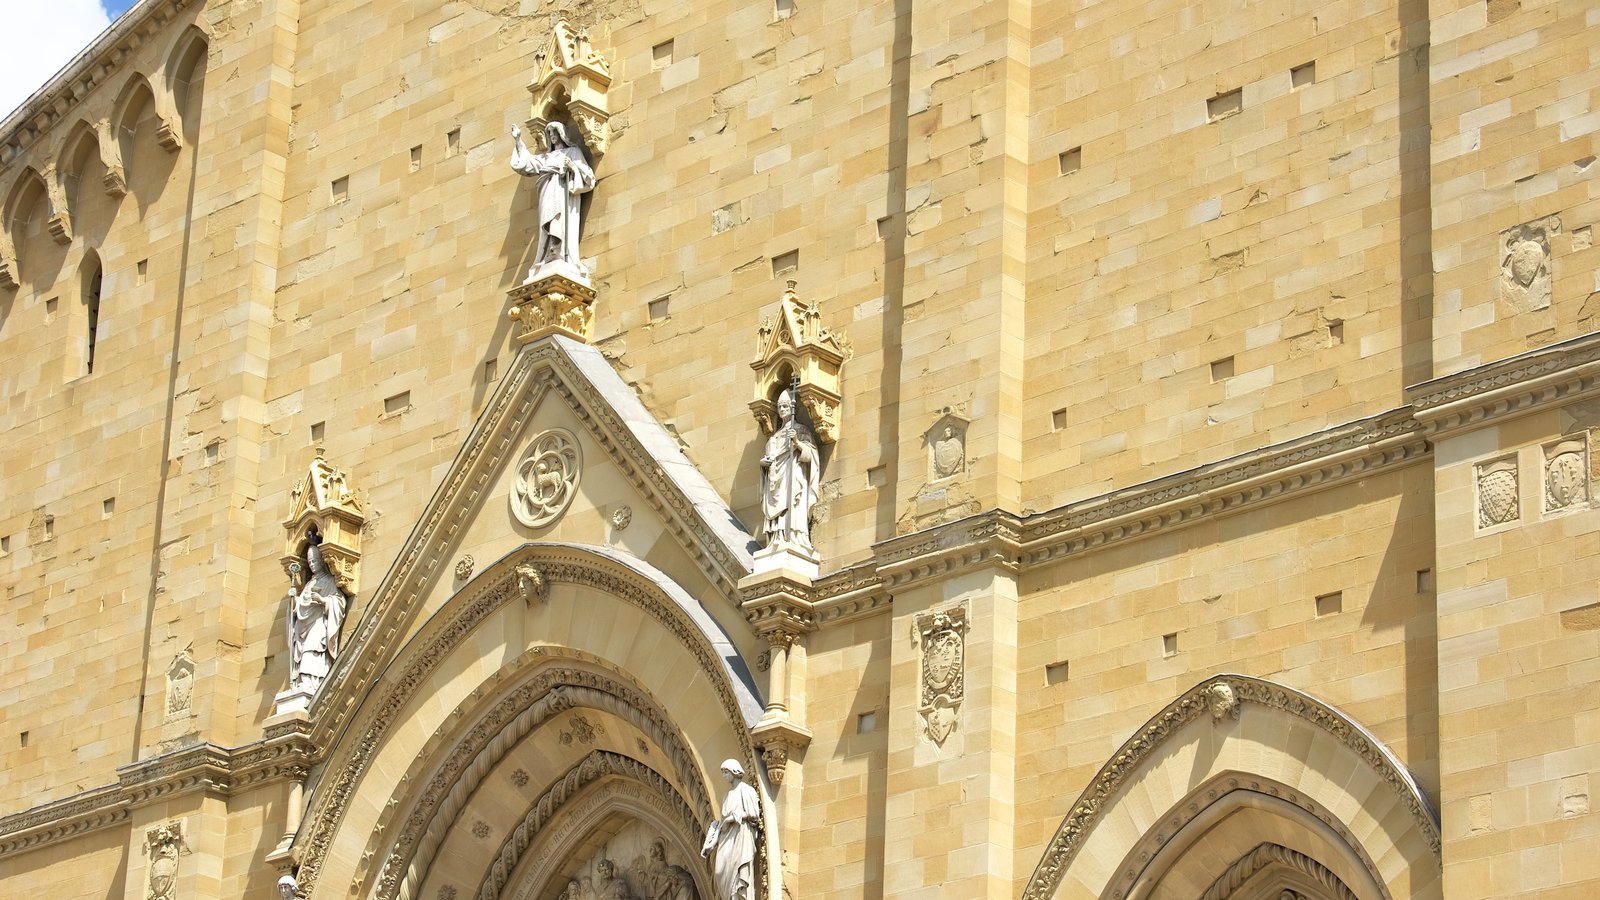 Cathedral of Arezzo showing a church or cathedral, religious aspects and heritage architecture